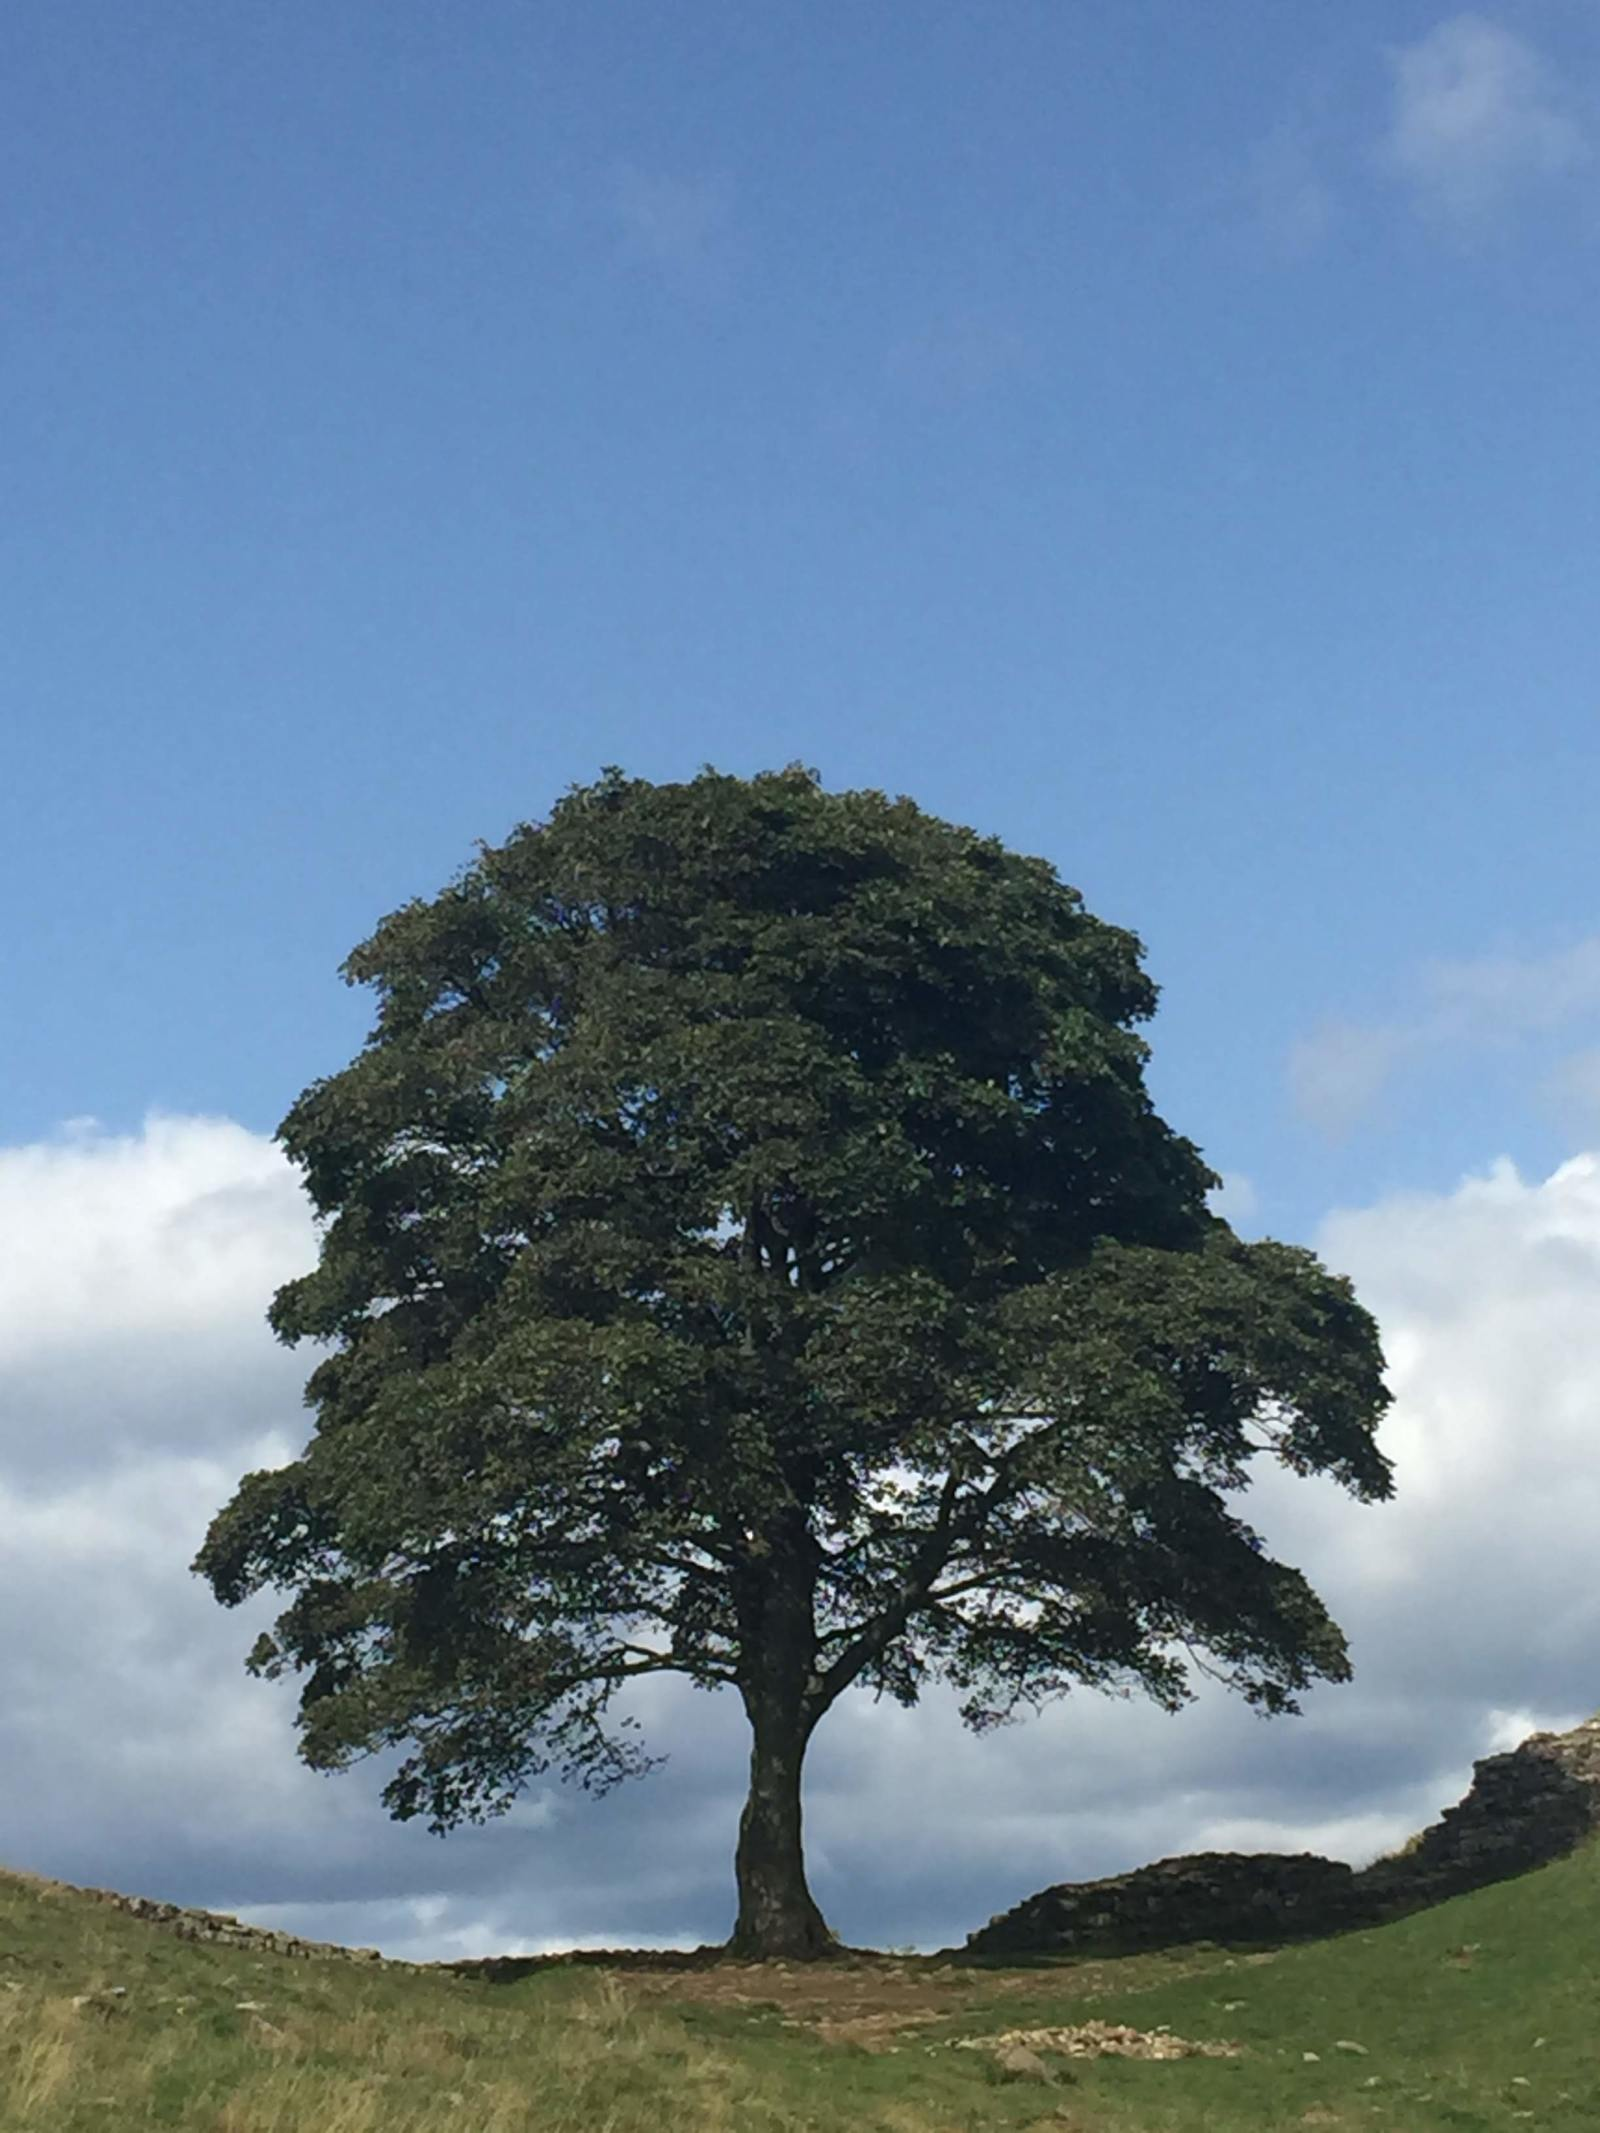 the most famous tree in the world at sycamore gap